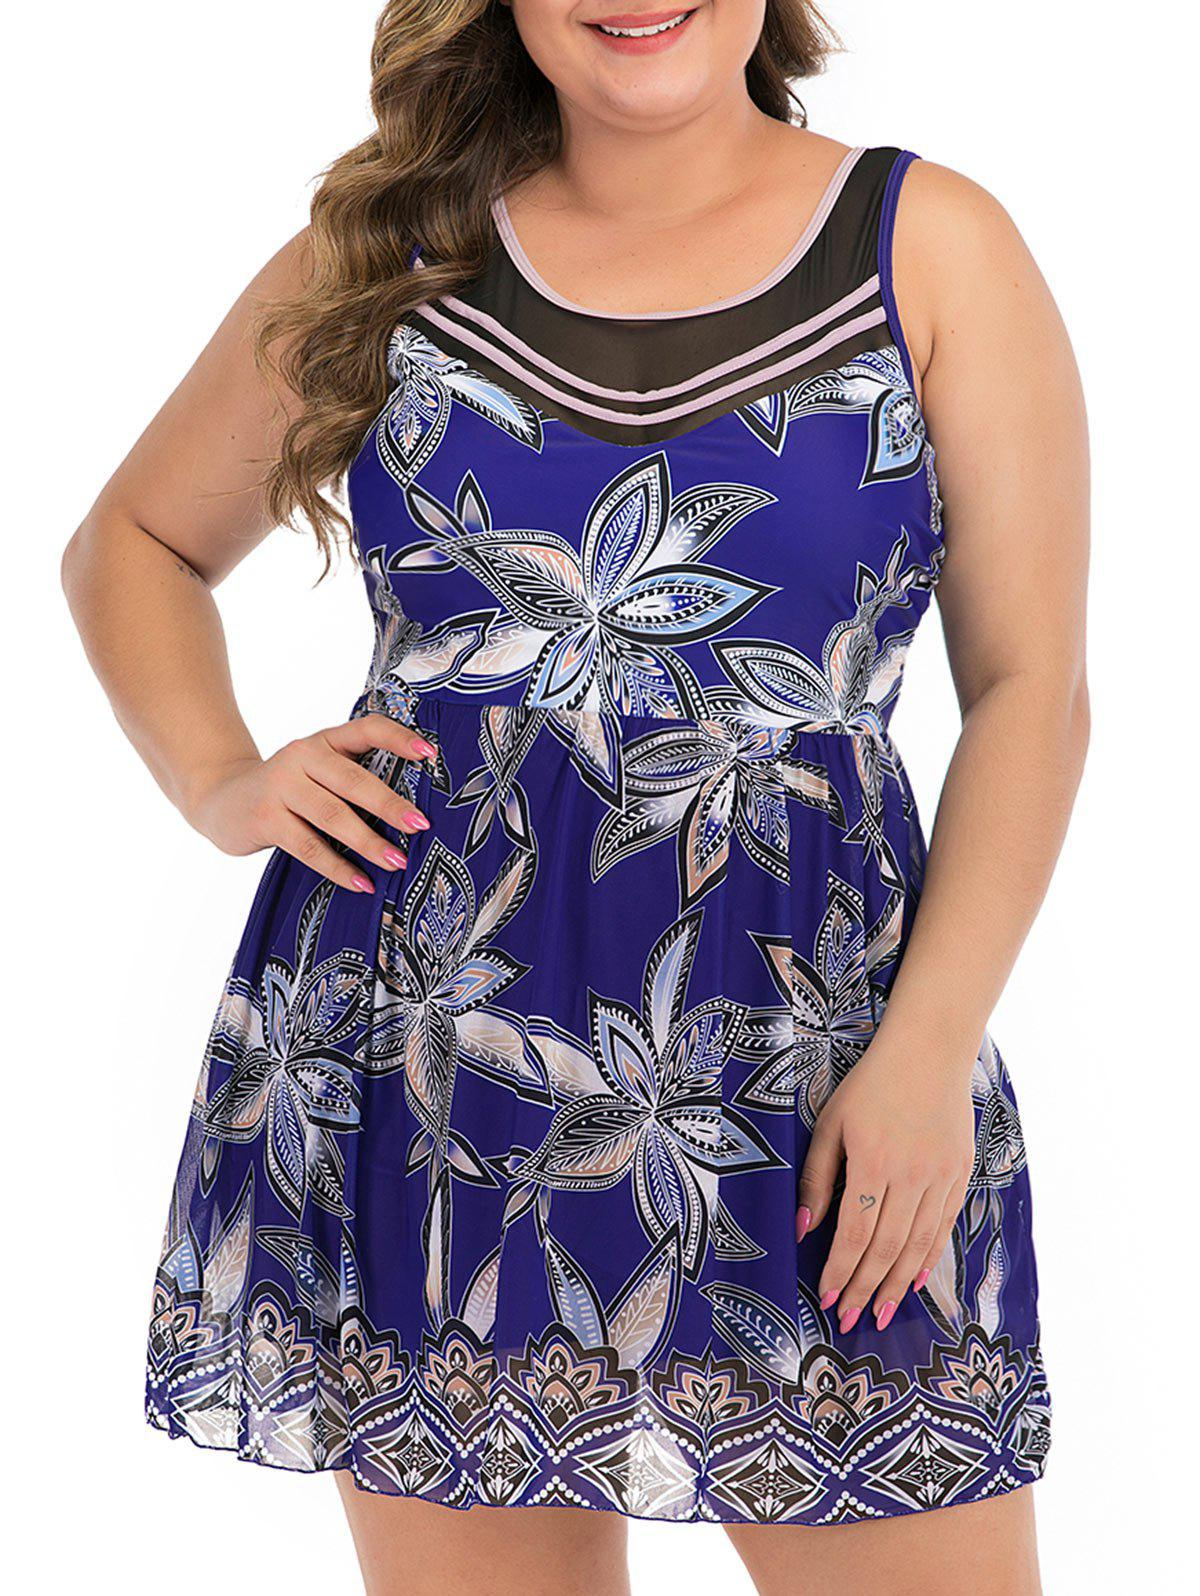 Chic Tie Back Floral Mesh Panel Plus Size Skirted Swimsuit